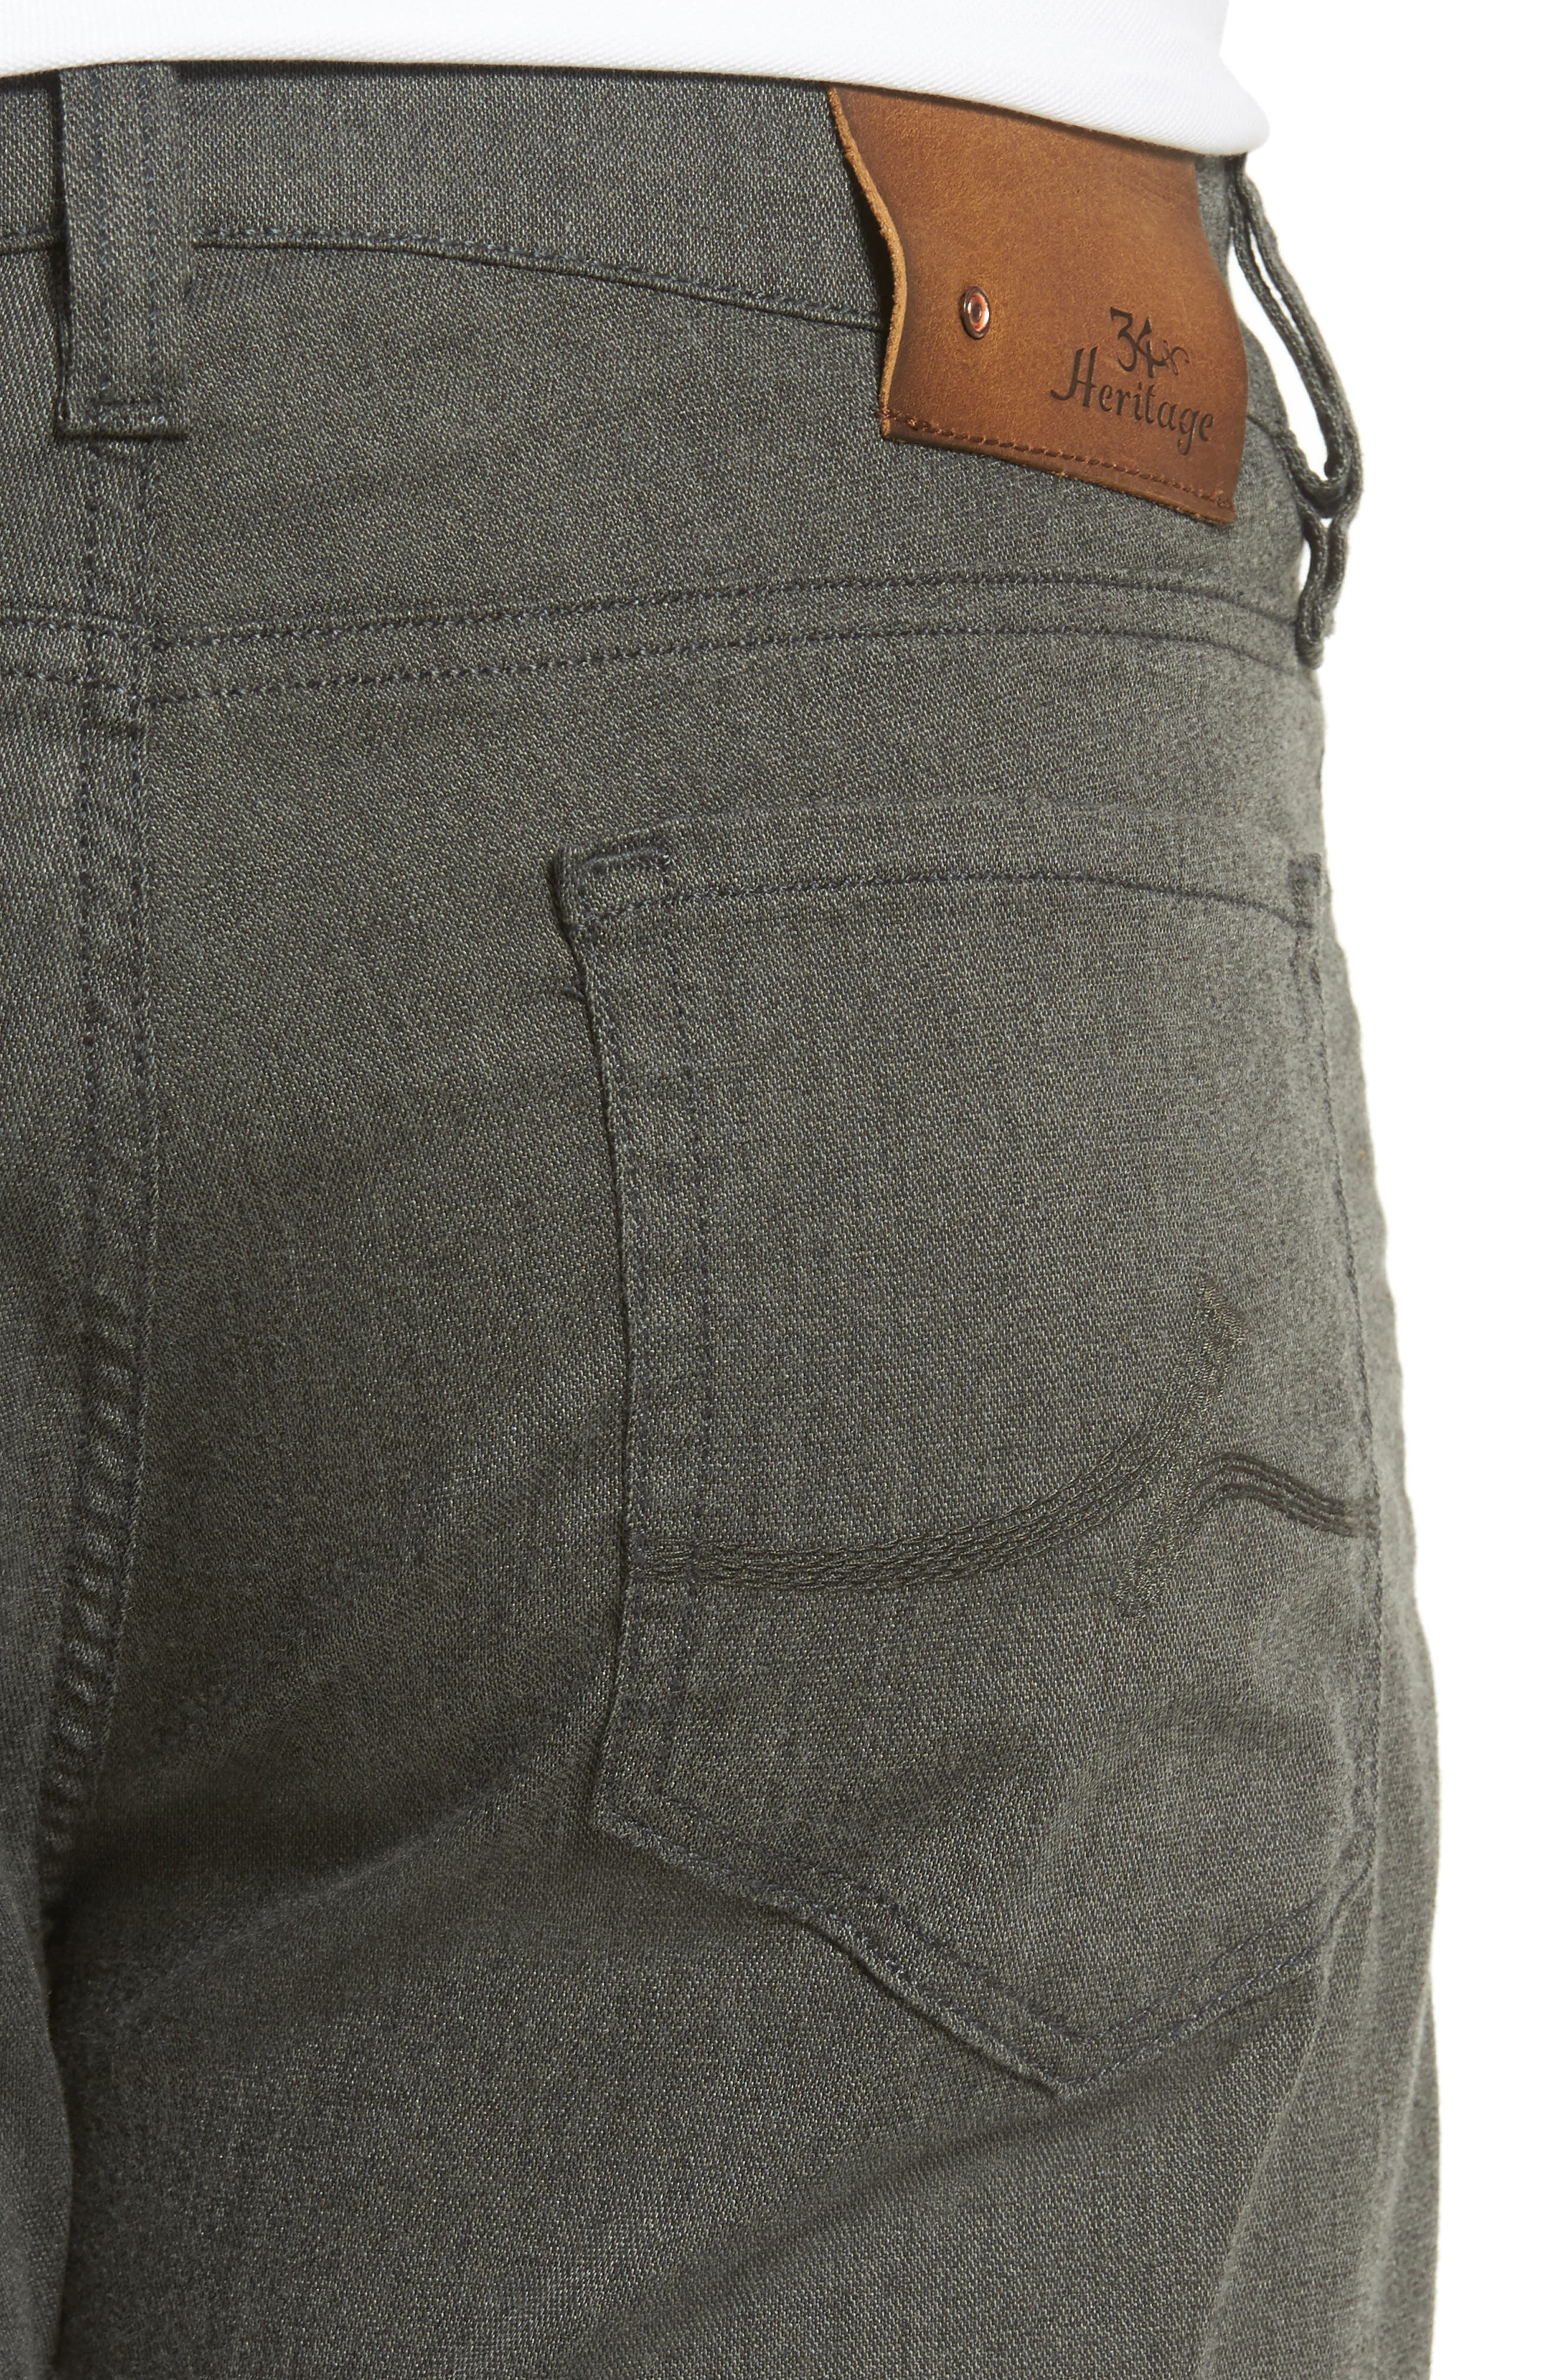 34 HERITAGE,                             Courage Straight Leg Jeans,                             Alternate thumbnail 4, color,                             020